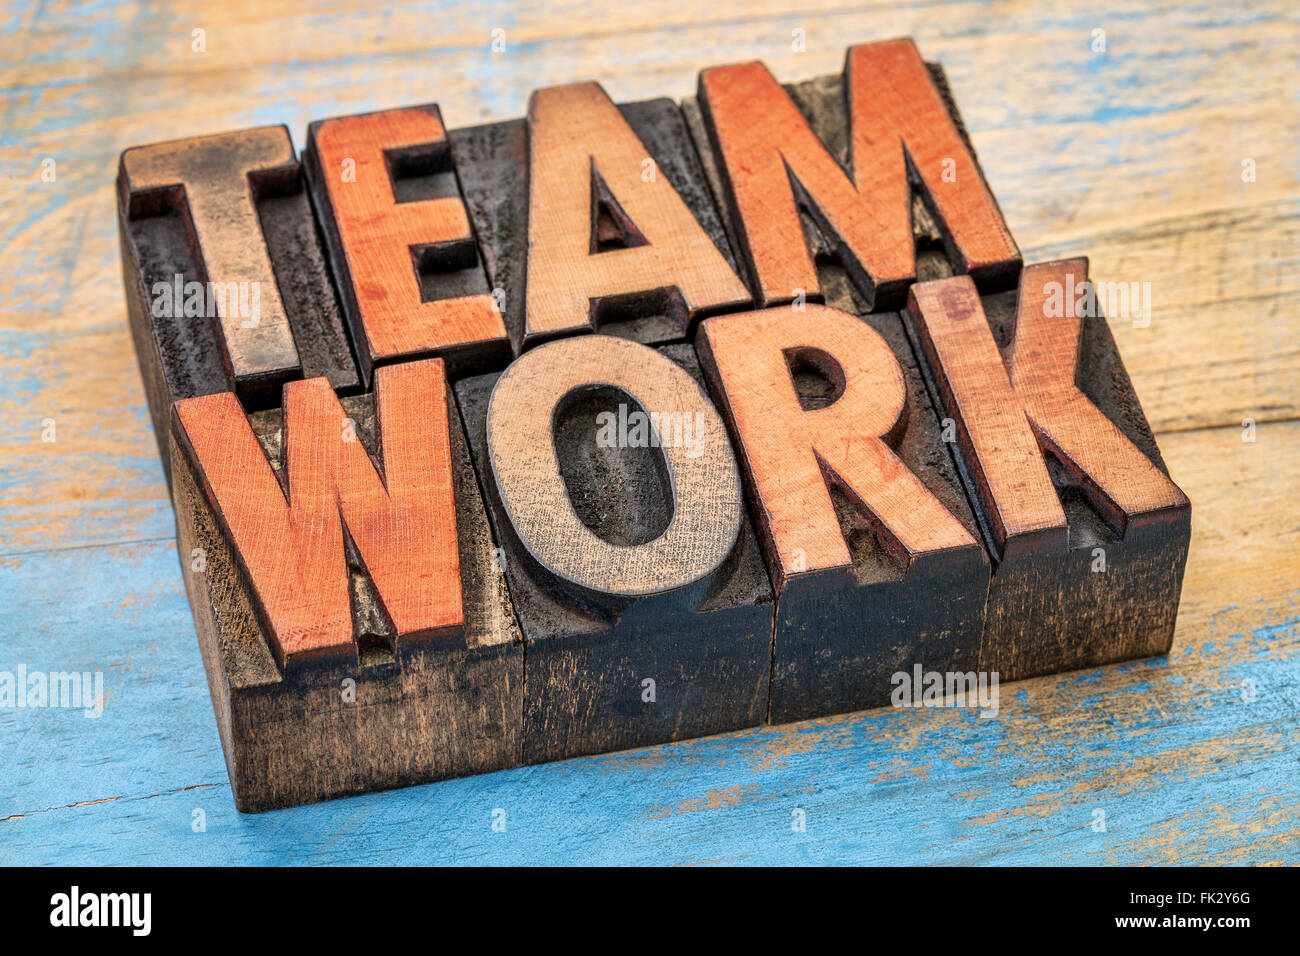 teamwork word abstract in vintage letterpress wood type printing blocks stained by color inks - Stock Image